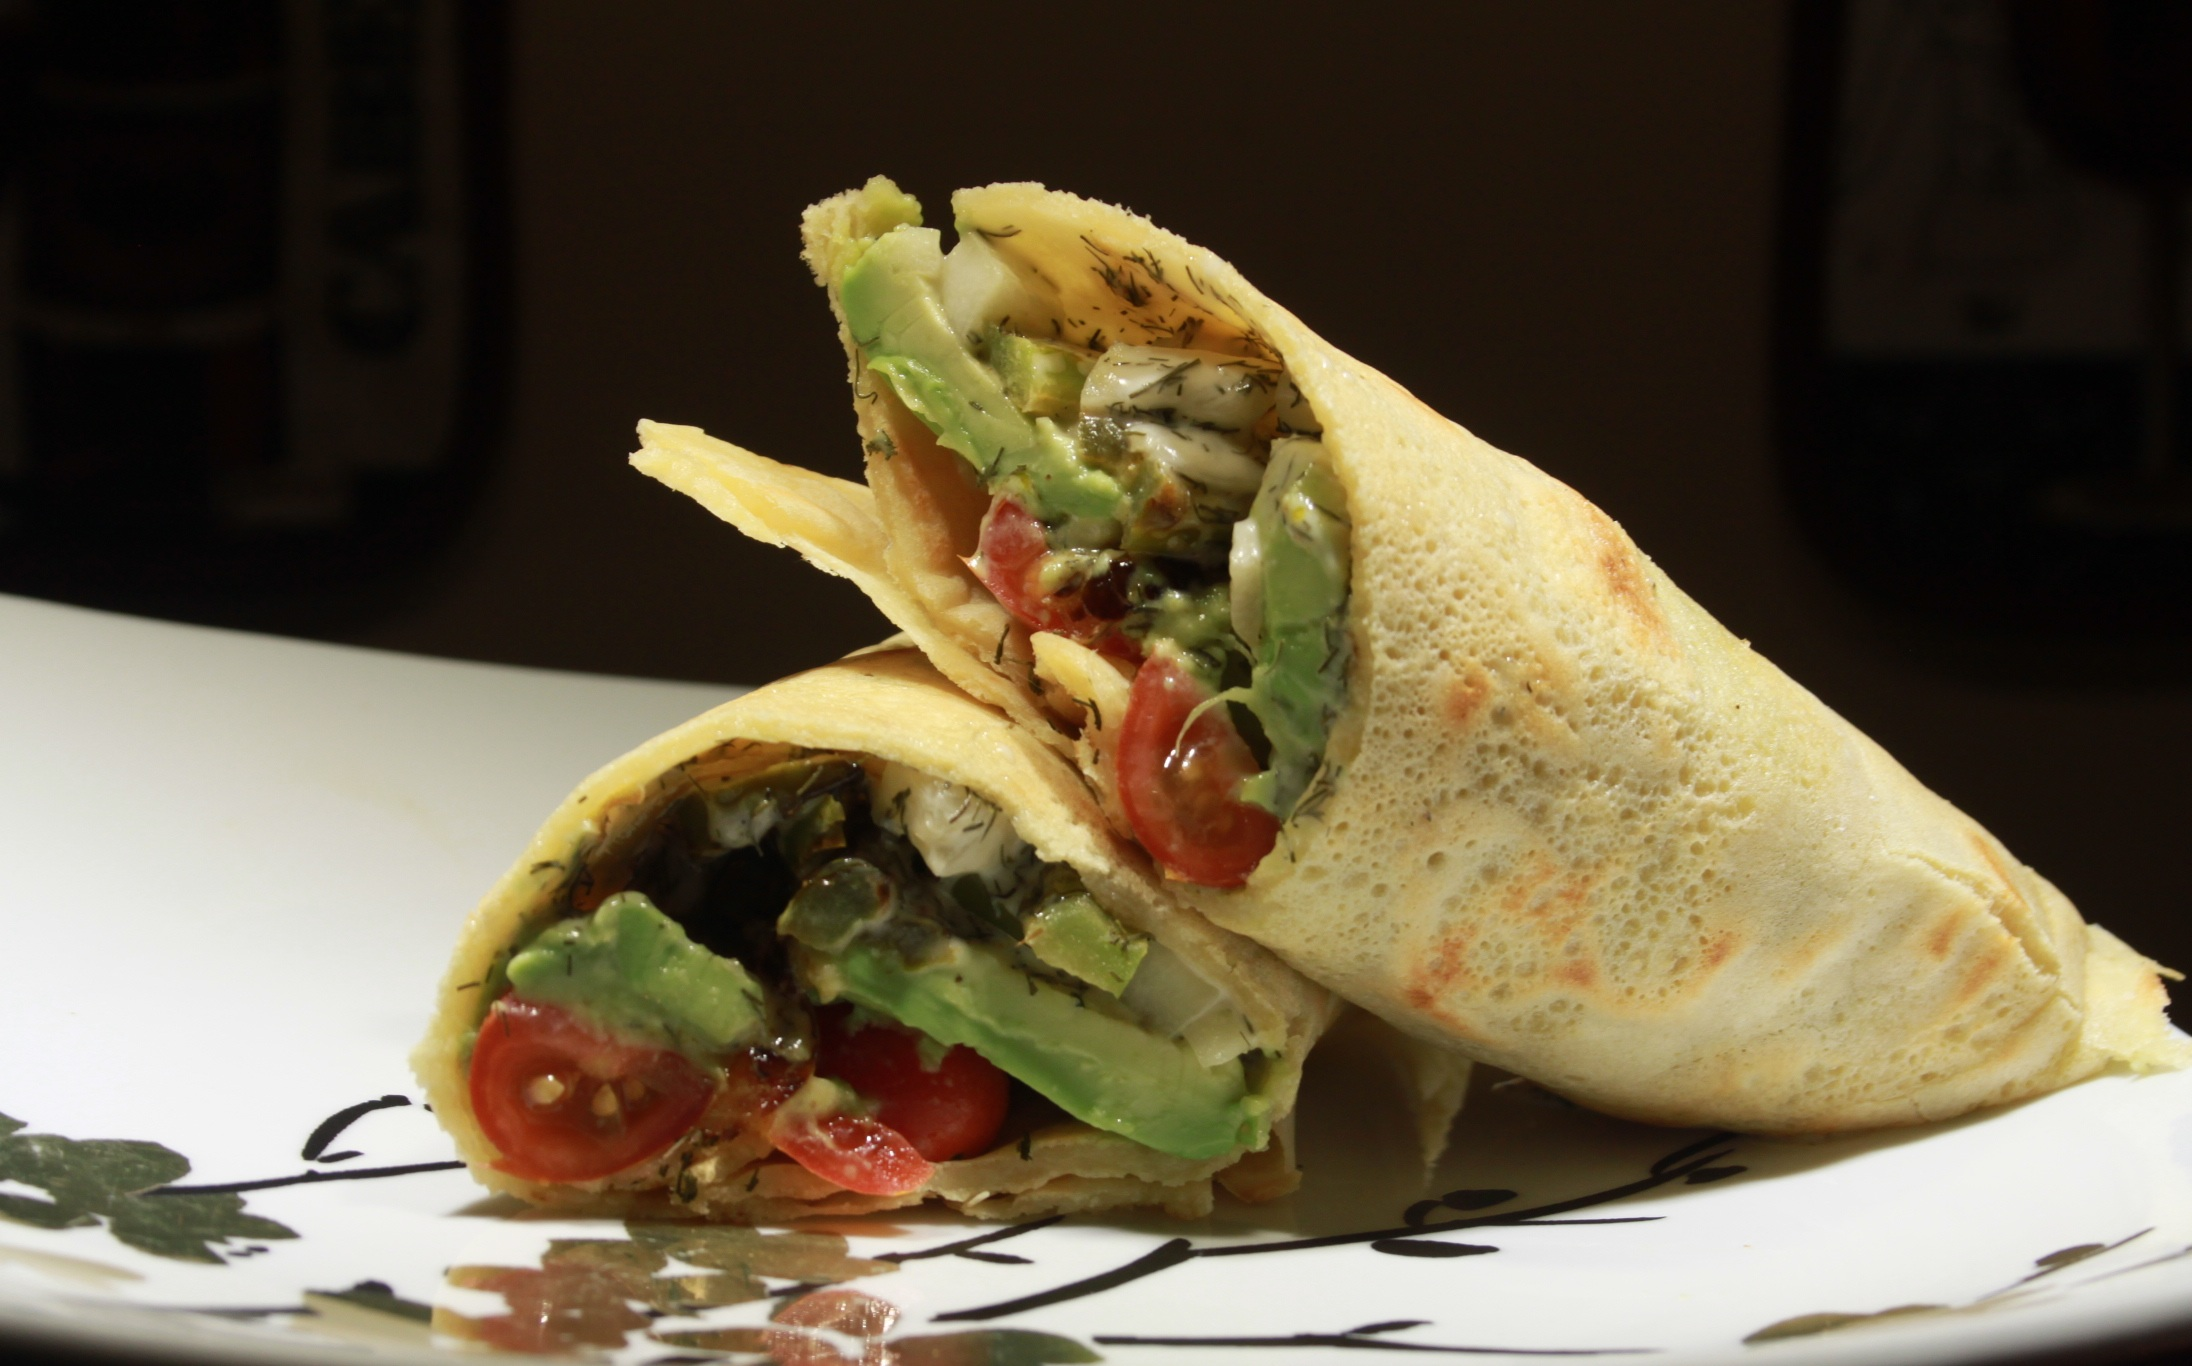 Chipotle Wrap - $11 - Sauteed veggies and steamed wild rice smothered with our homemade chipotle sauce and wrapped inside a spelt tortilla wrap.Ingredients: Zucchini, Wild Rice, Avocado, Onions, Chipotle Sauce, Spelt Tortilla, Turmeric, Cumin, Sea Salt, Grapeseed Oil